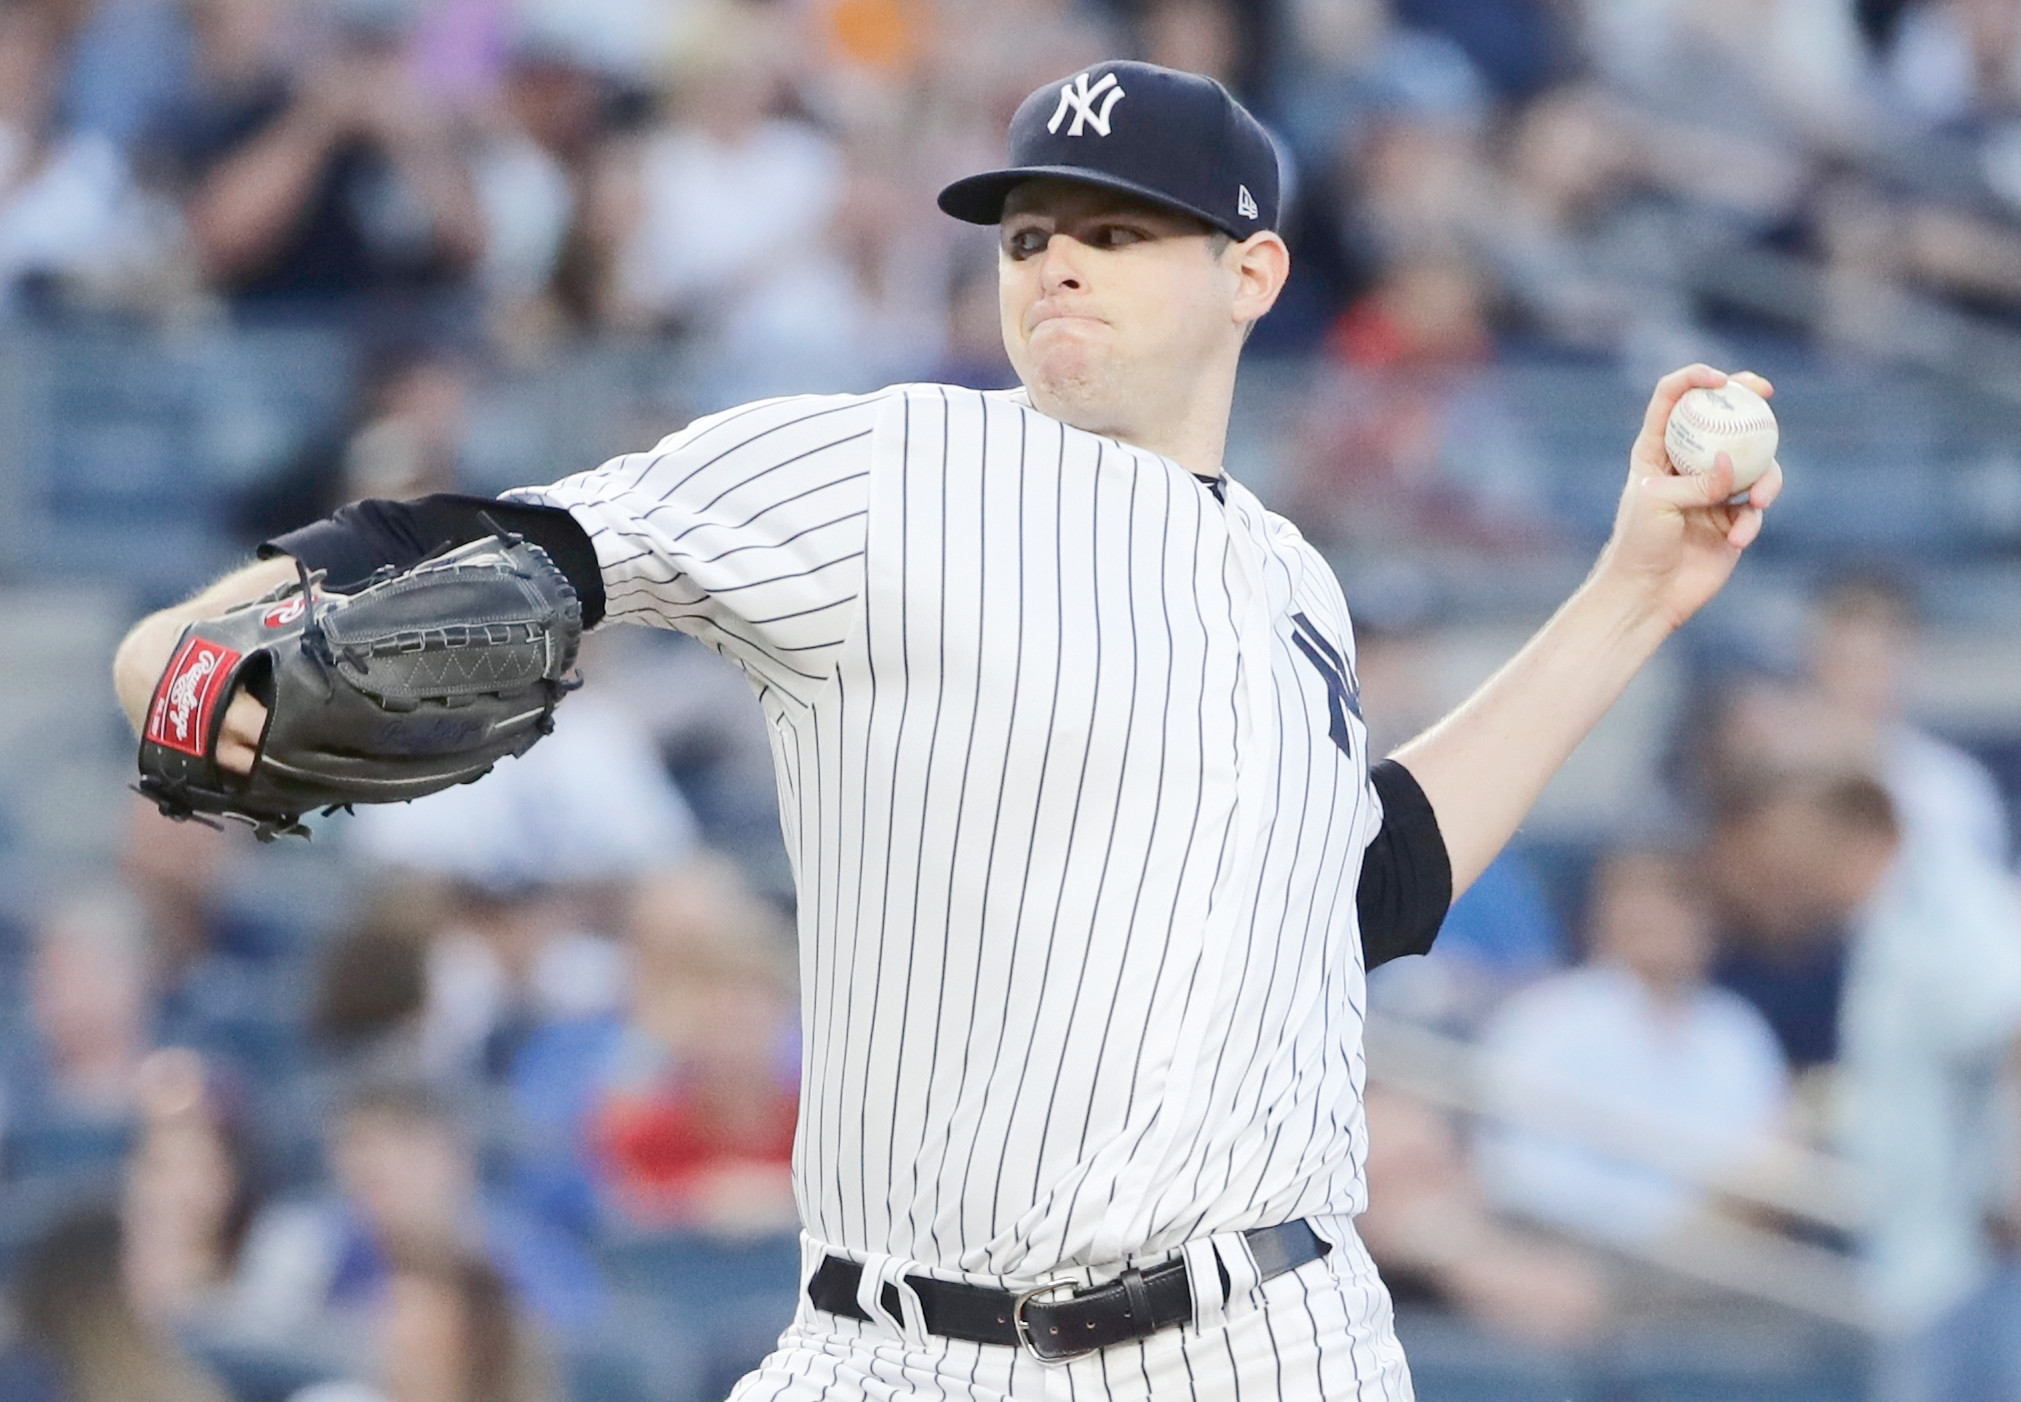 Sumter native and New York Yankees starting pitcher Jordan Montgomery talked with Justin Driggers of The Sumter Item about his first half-season in the Major Leagues that saw him go 6-4 with a sub 4.00 earned run average.